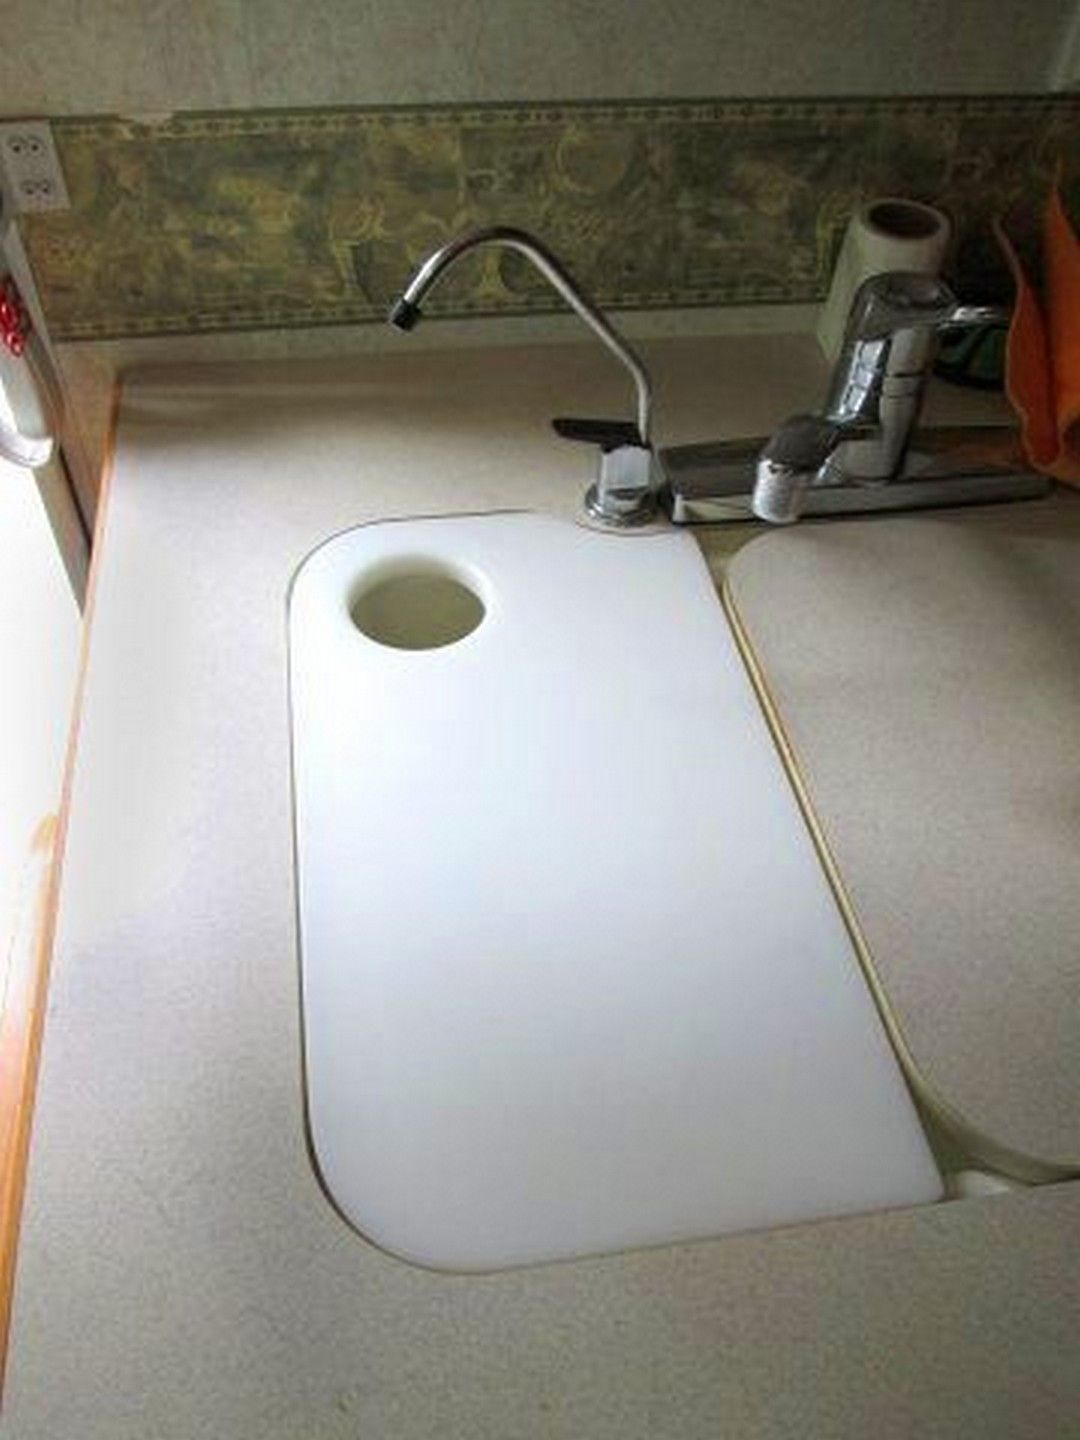 Tiny Conversion RV Sink for Bathroom or Kitchen | Small Spaces ...